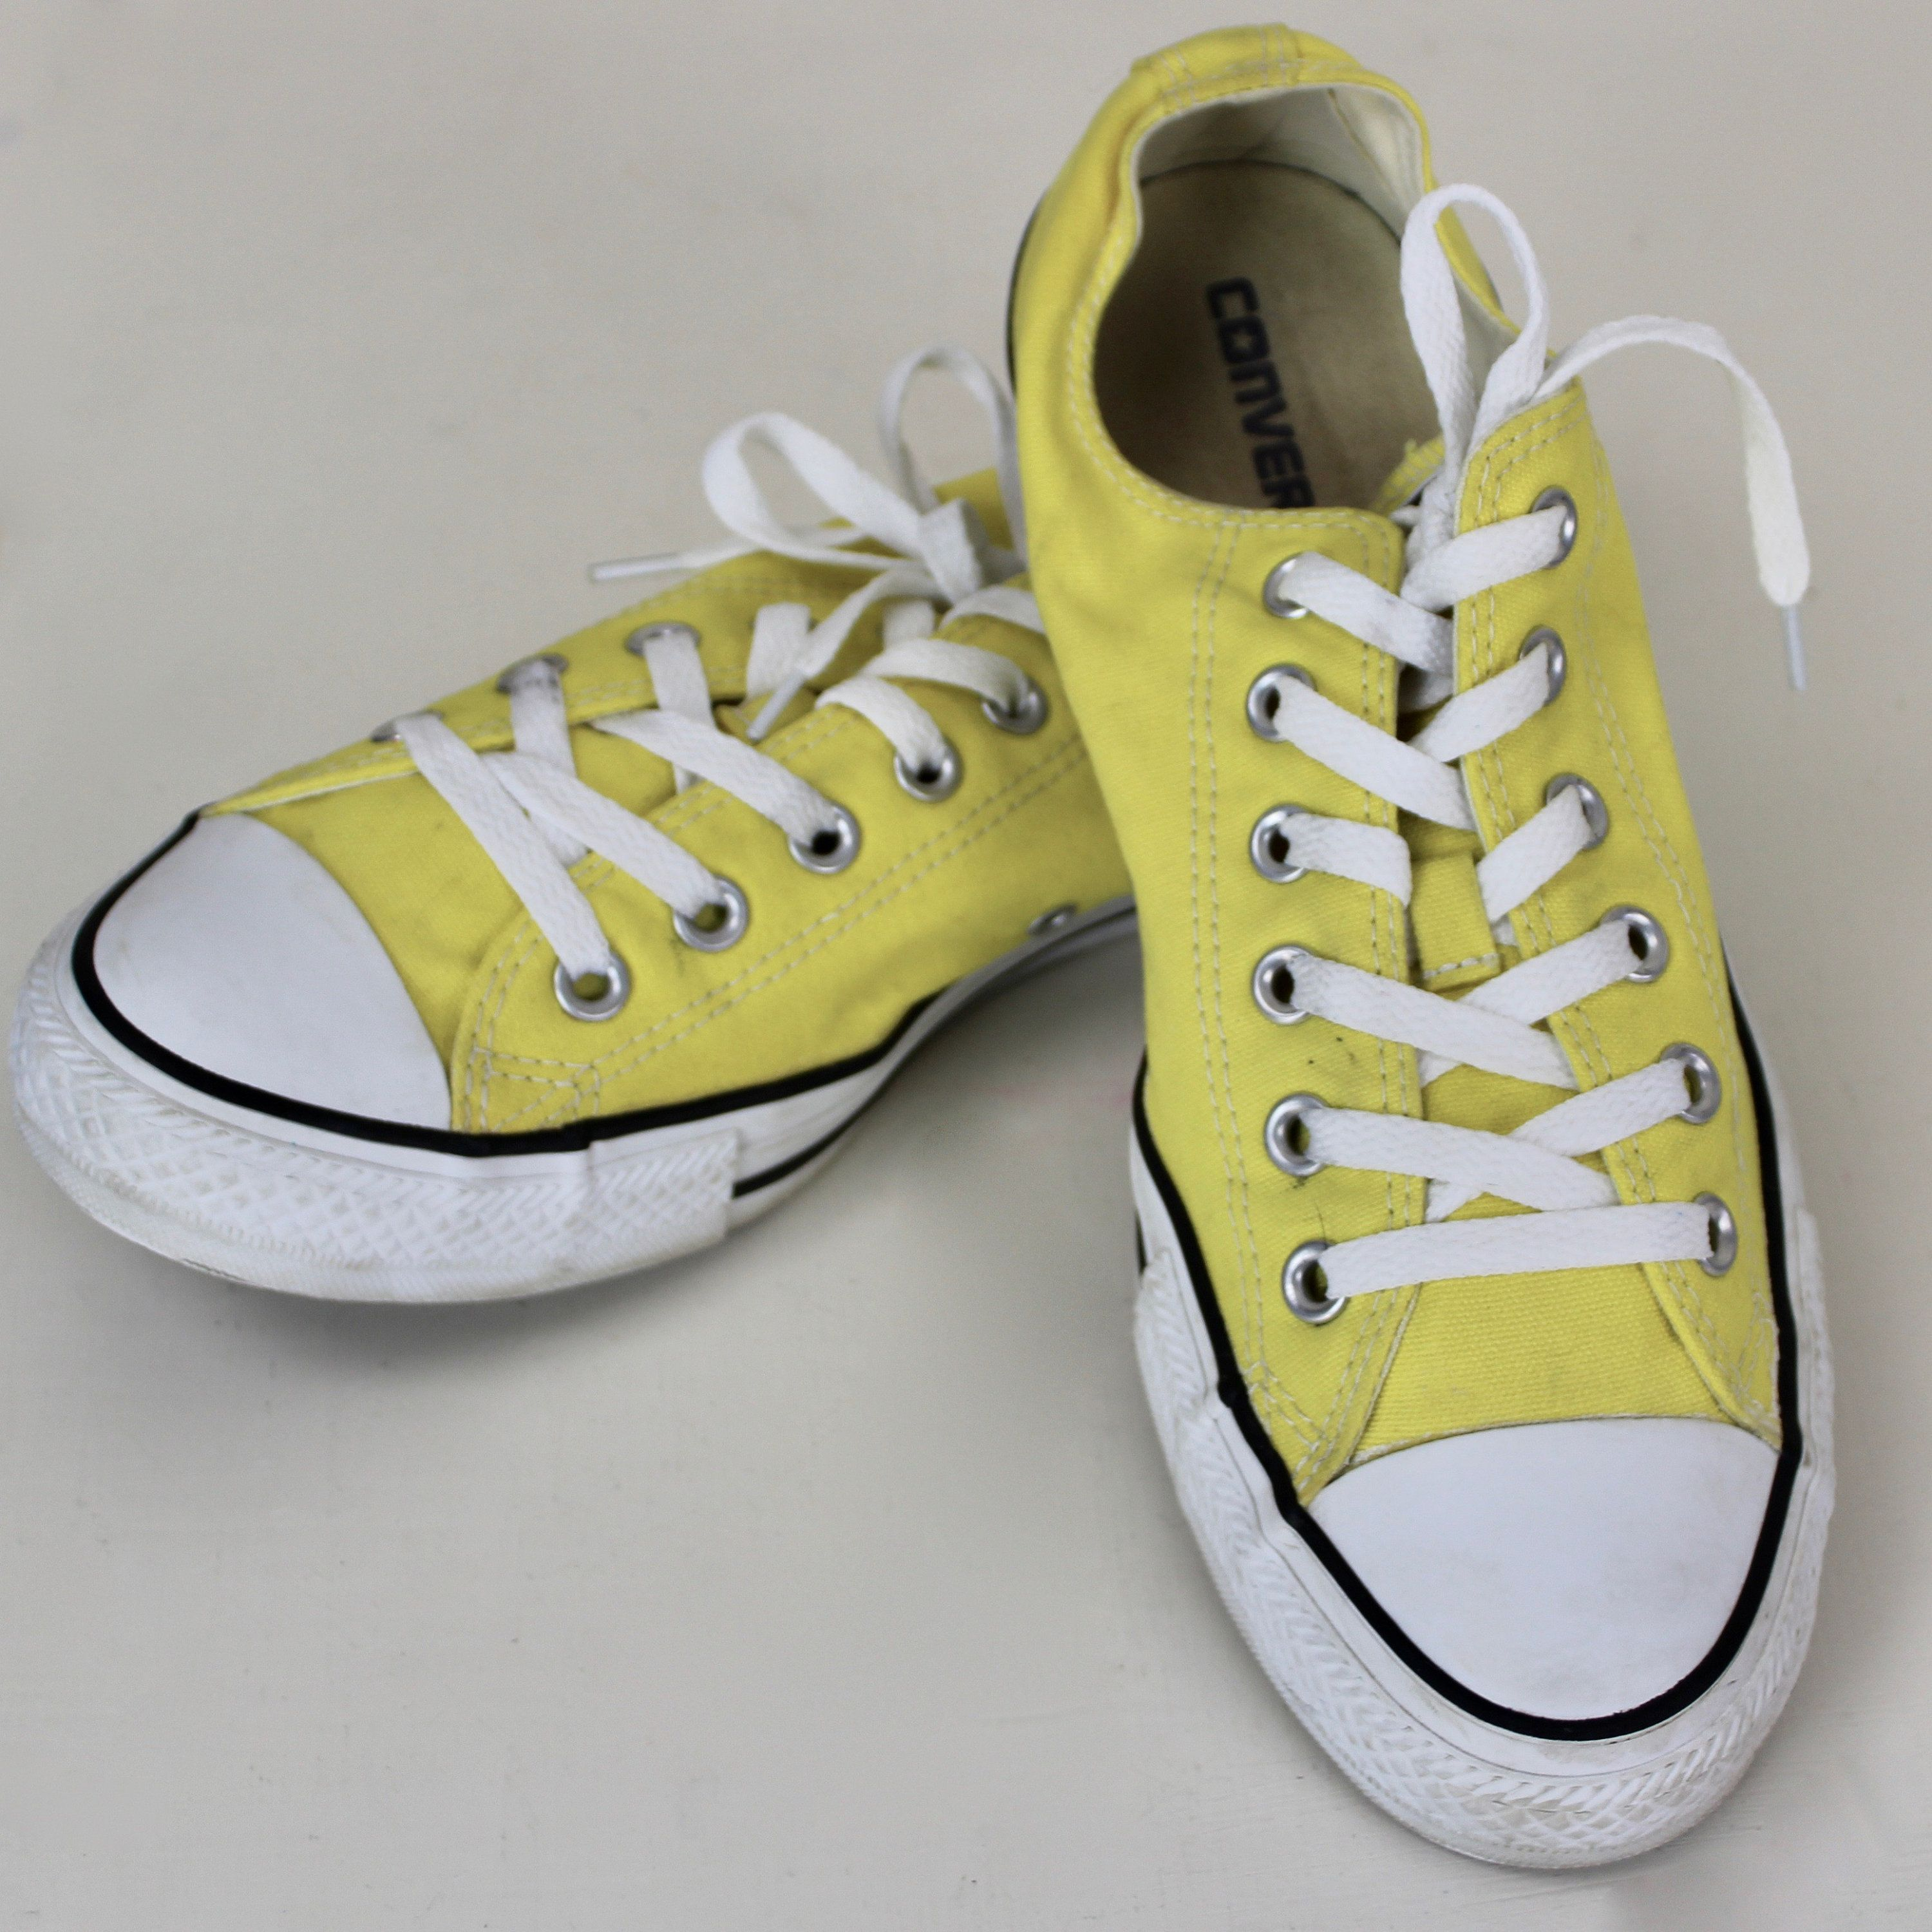 converse all star ags